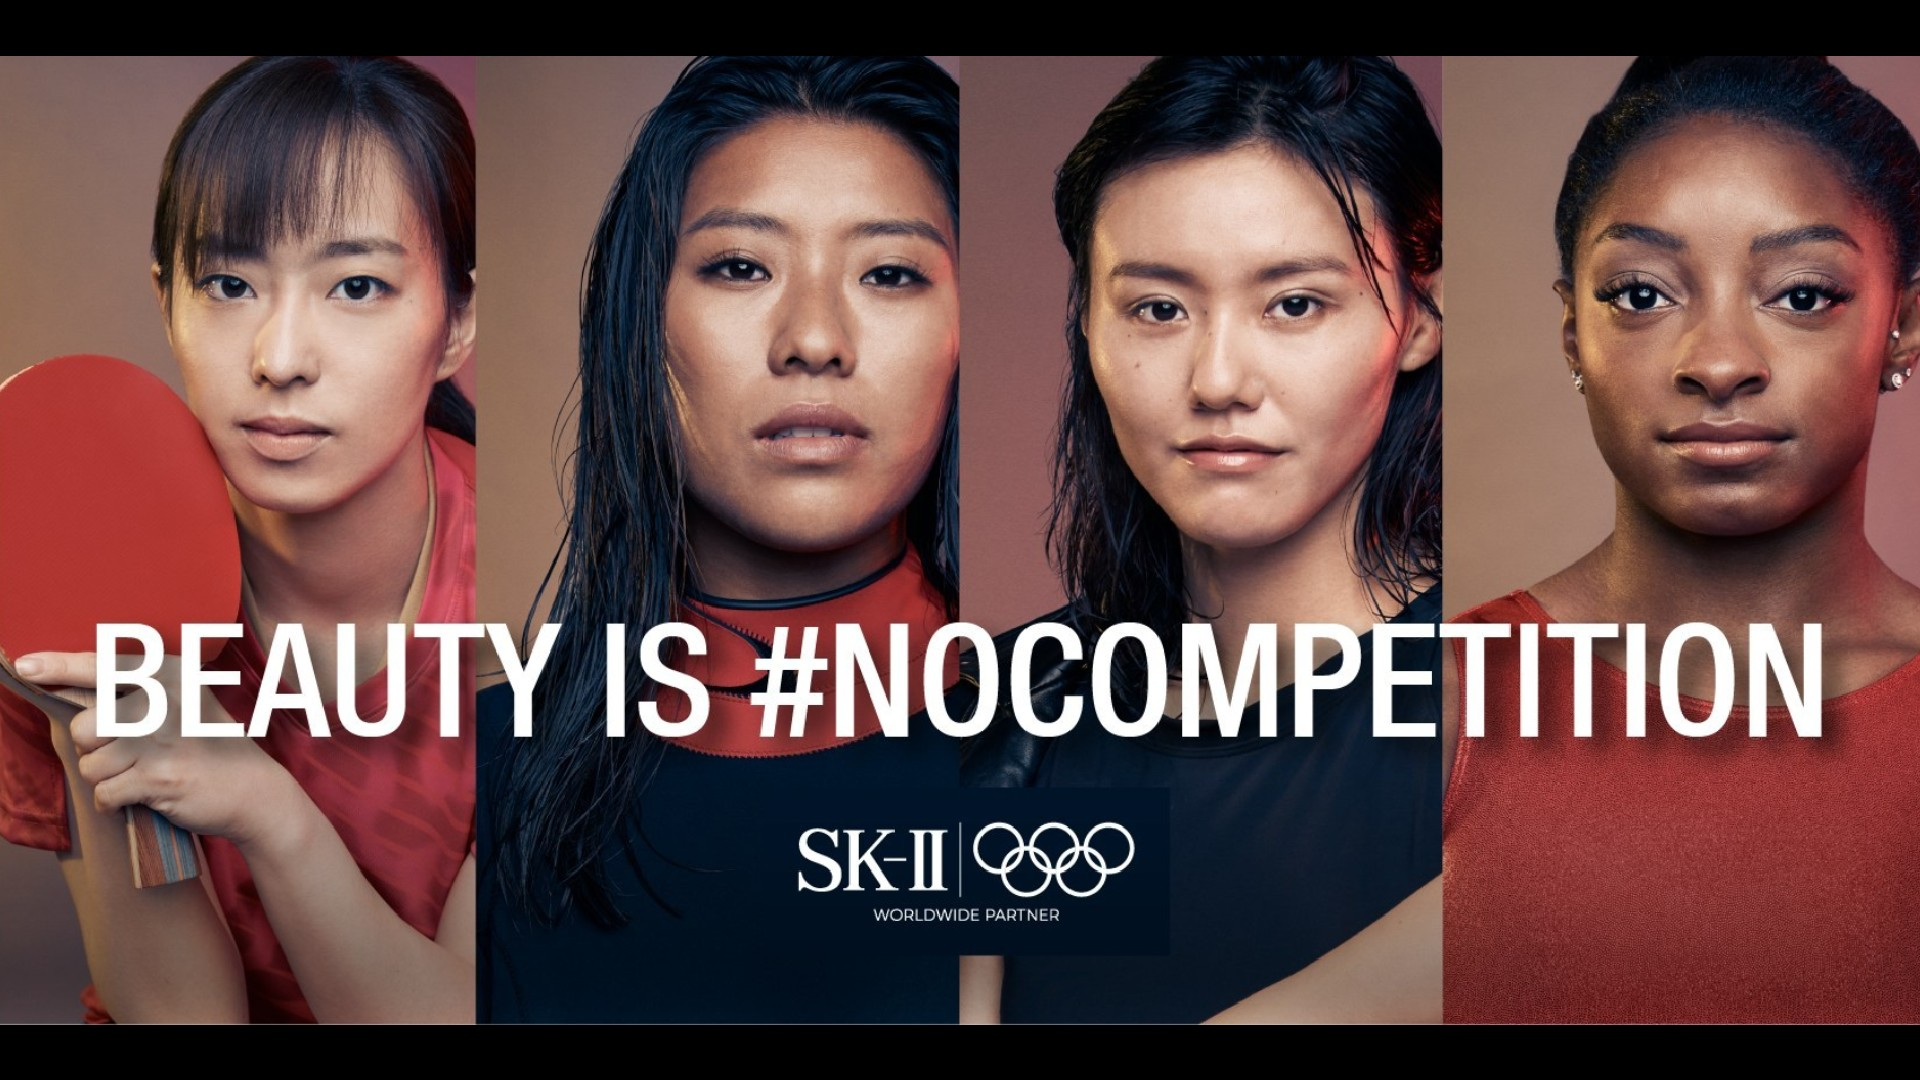 SK-II Beauty Standards advertisement